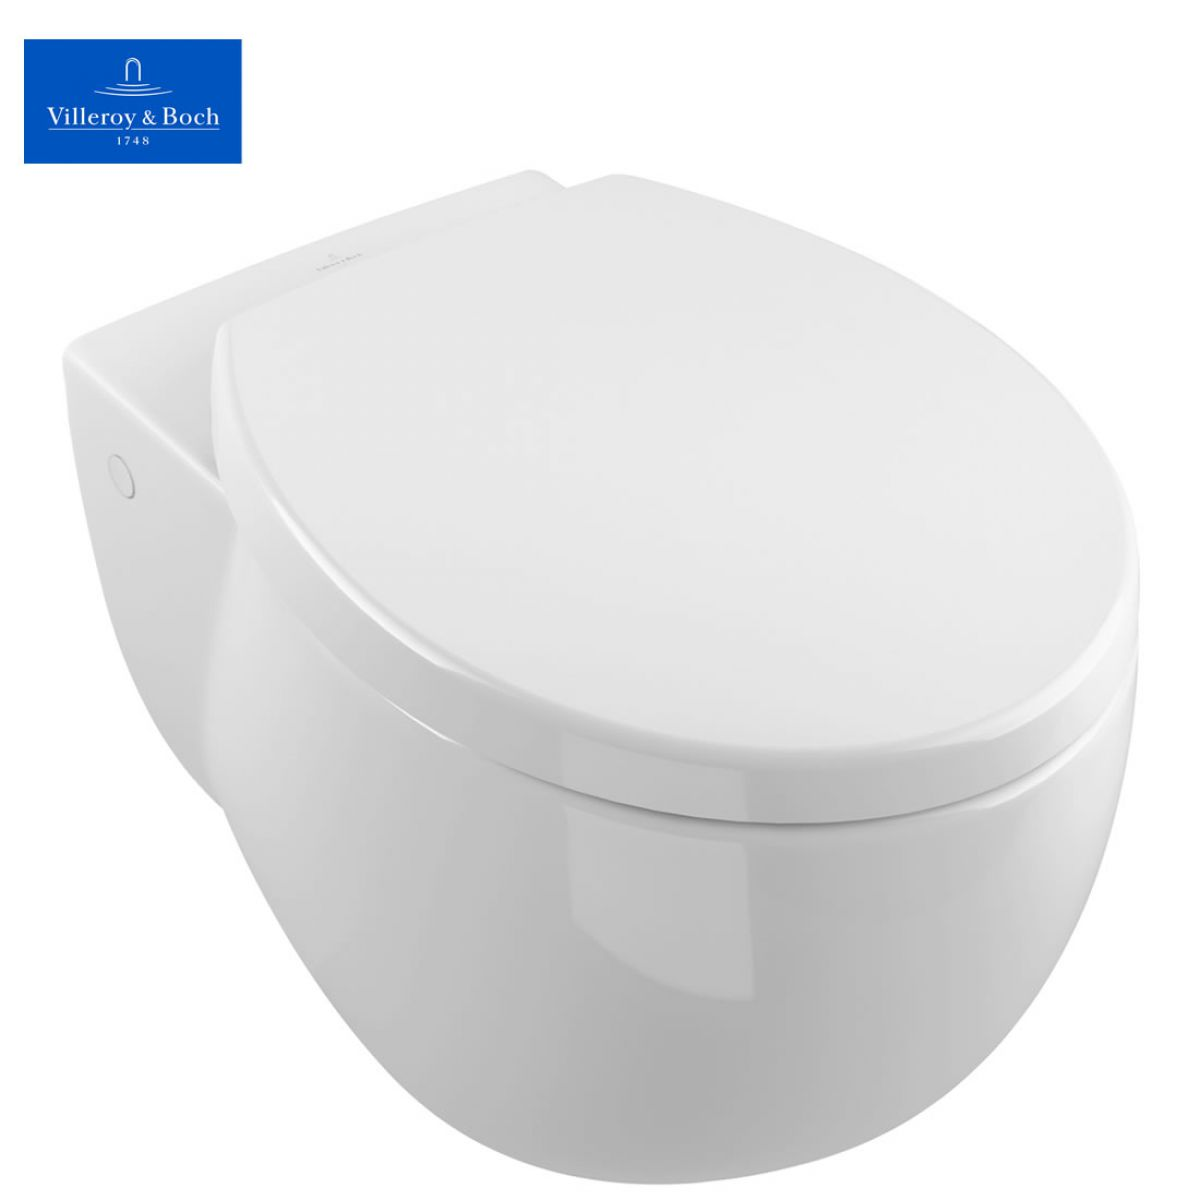 Villeroy boch aveo new generation wall hung toilet uk - Villeroy y bosch ...